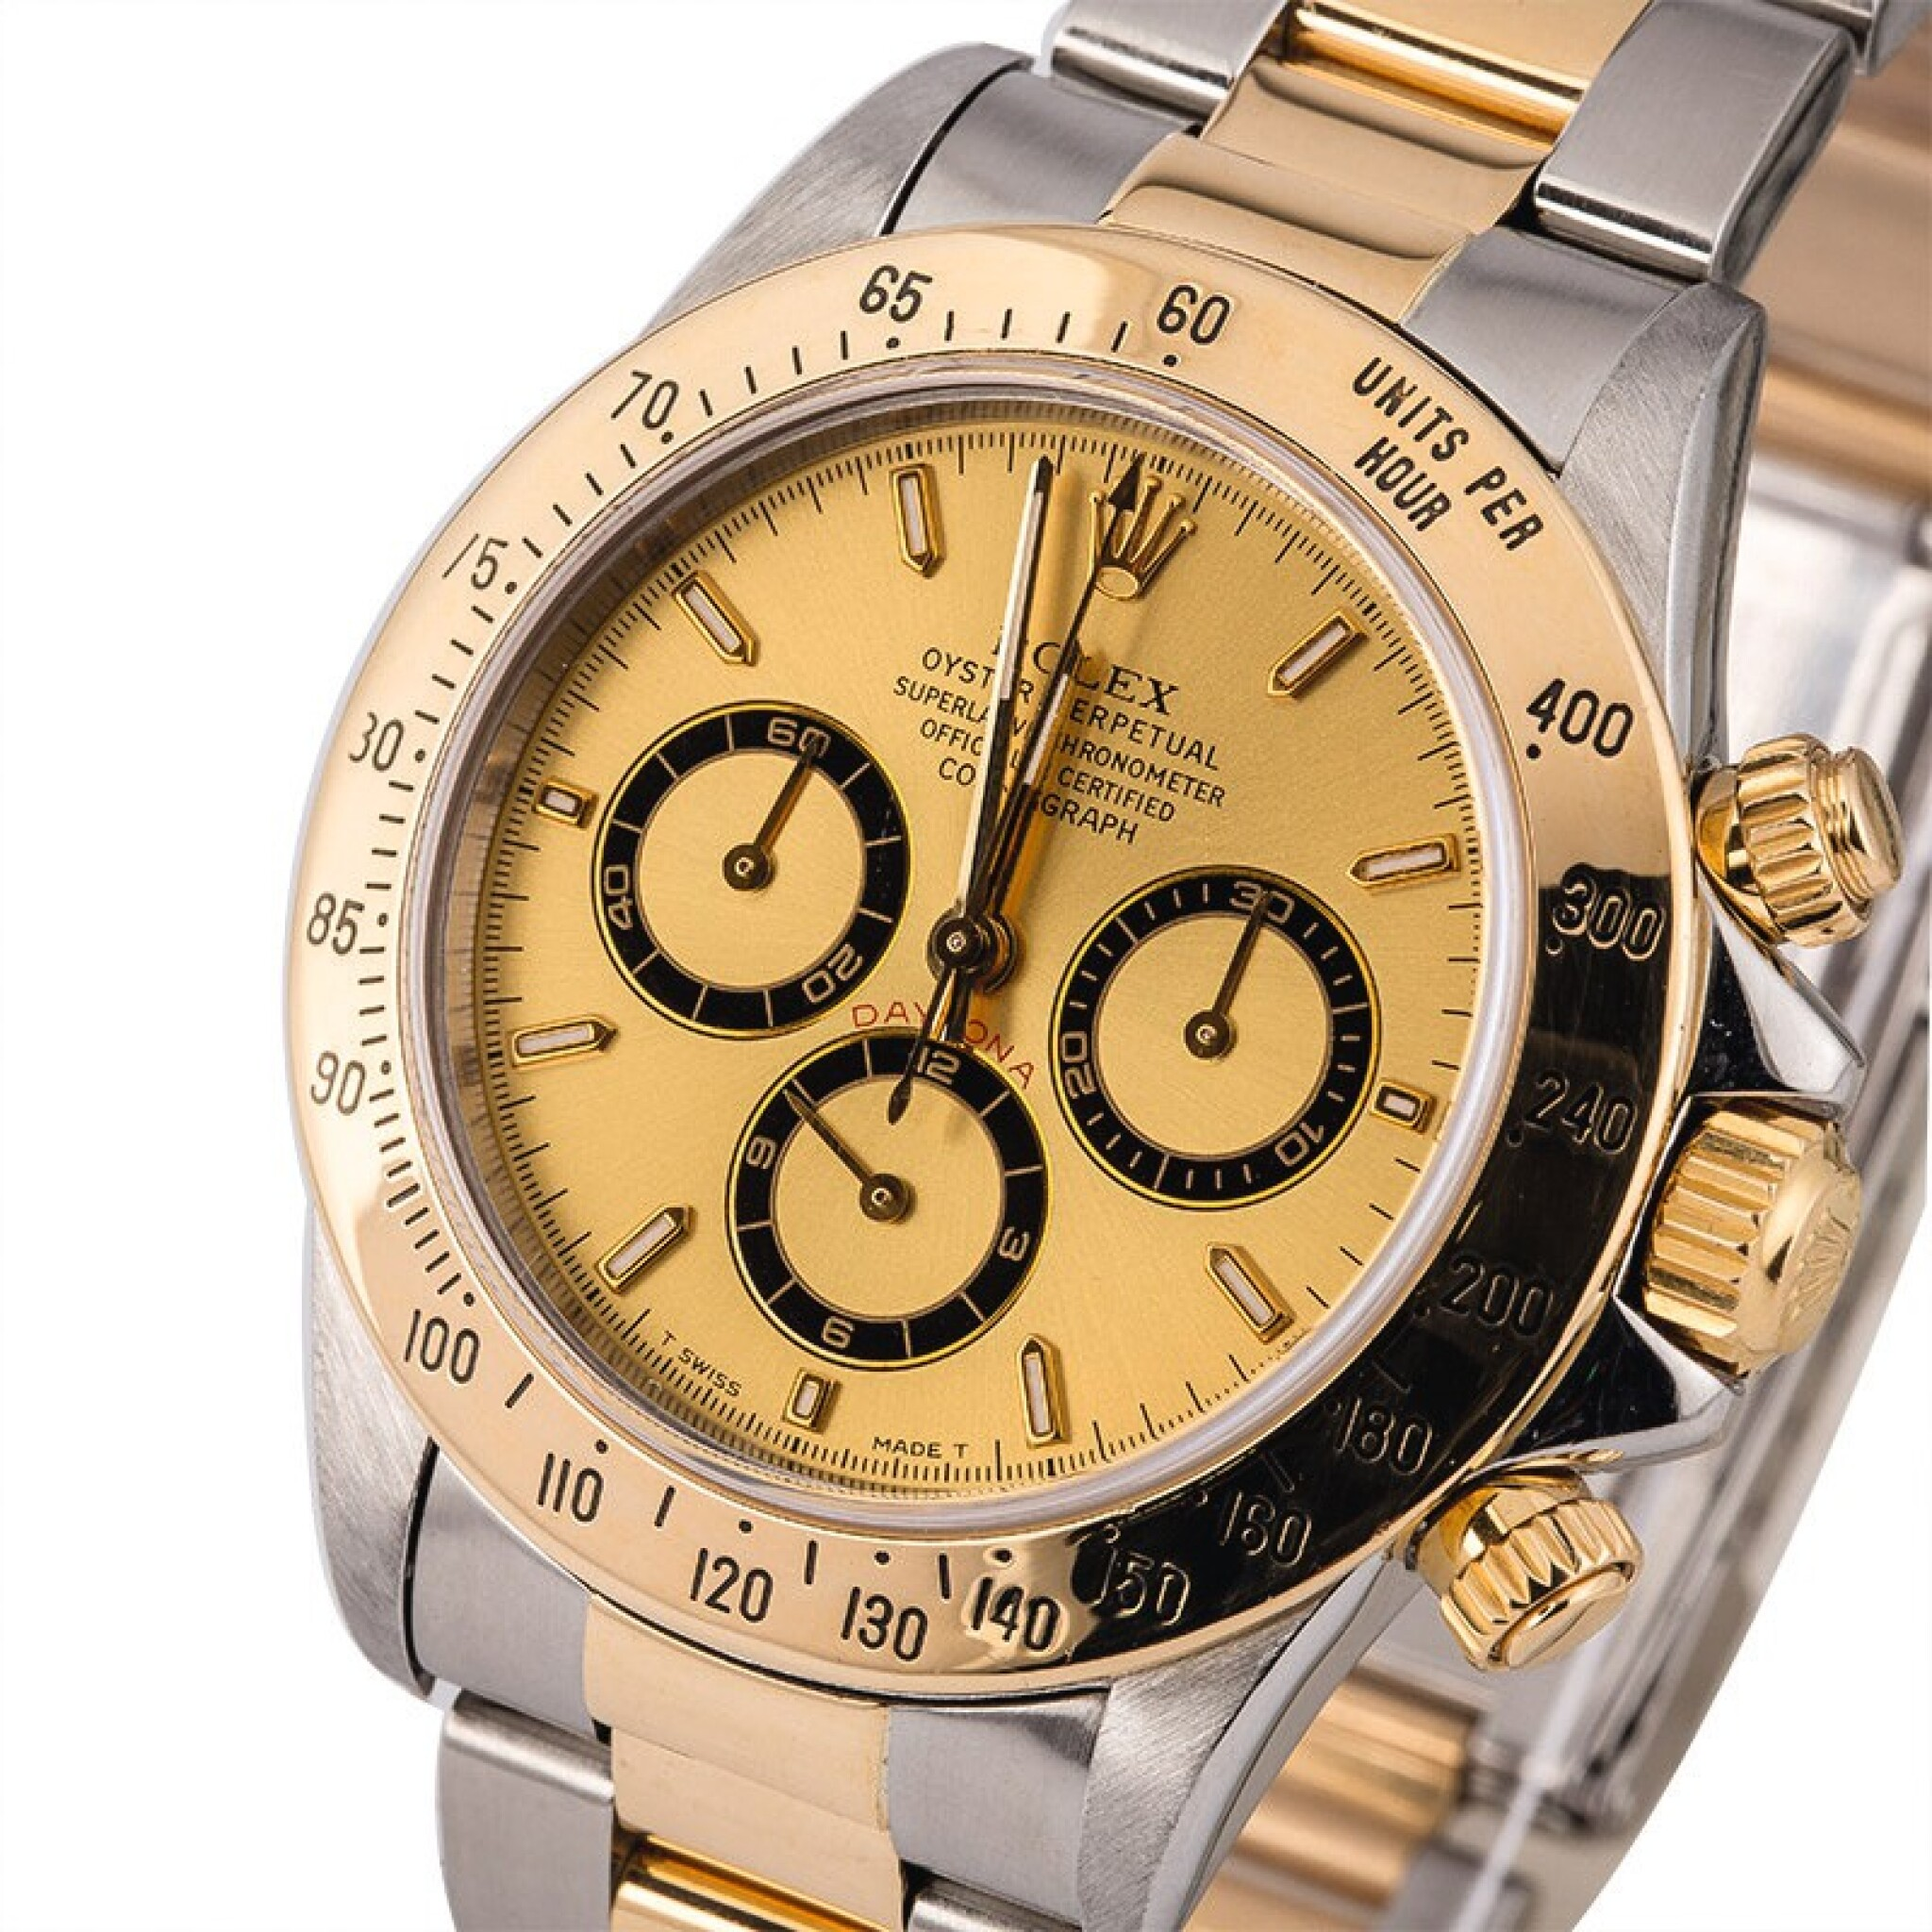 View full screen - View 1 of Lot 11. ROLEX   Daytona, Ref. 16523, A Stainless Steel and Yellow Gold Chronograph Wristwatch with Bracelet, Circa 1995  .